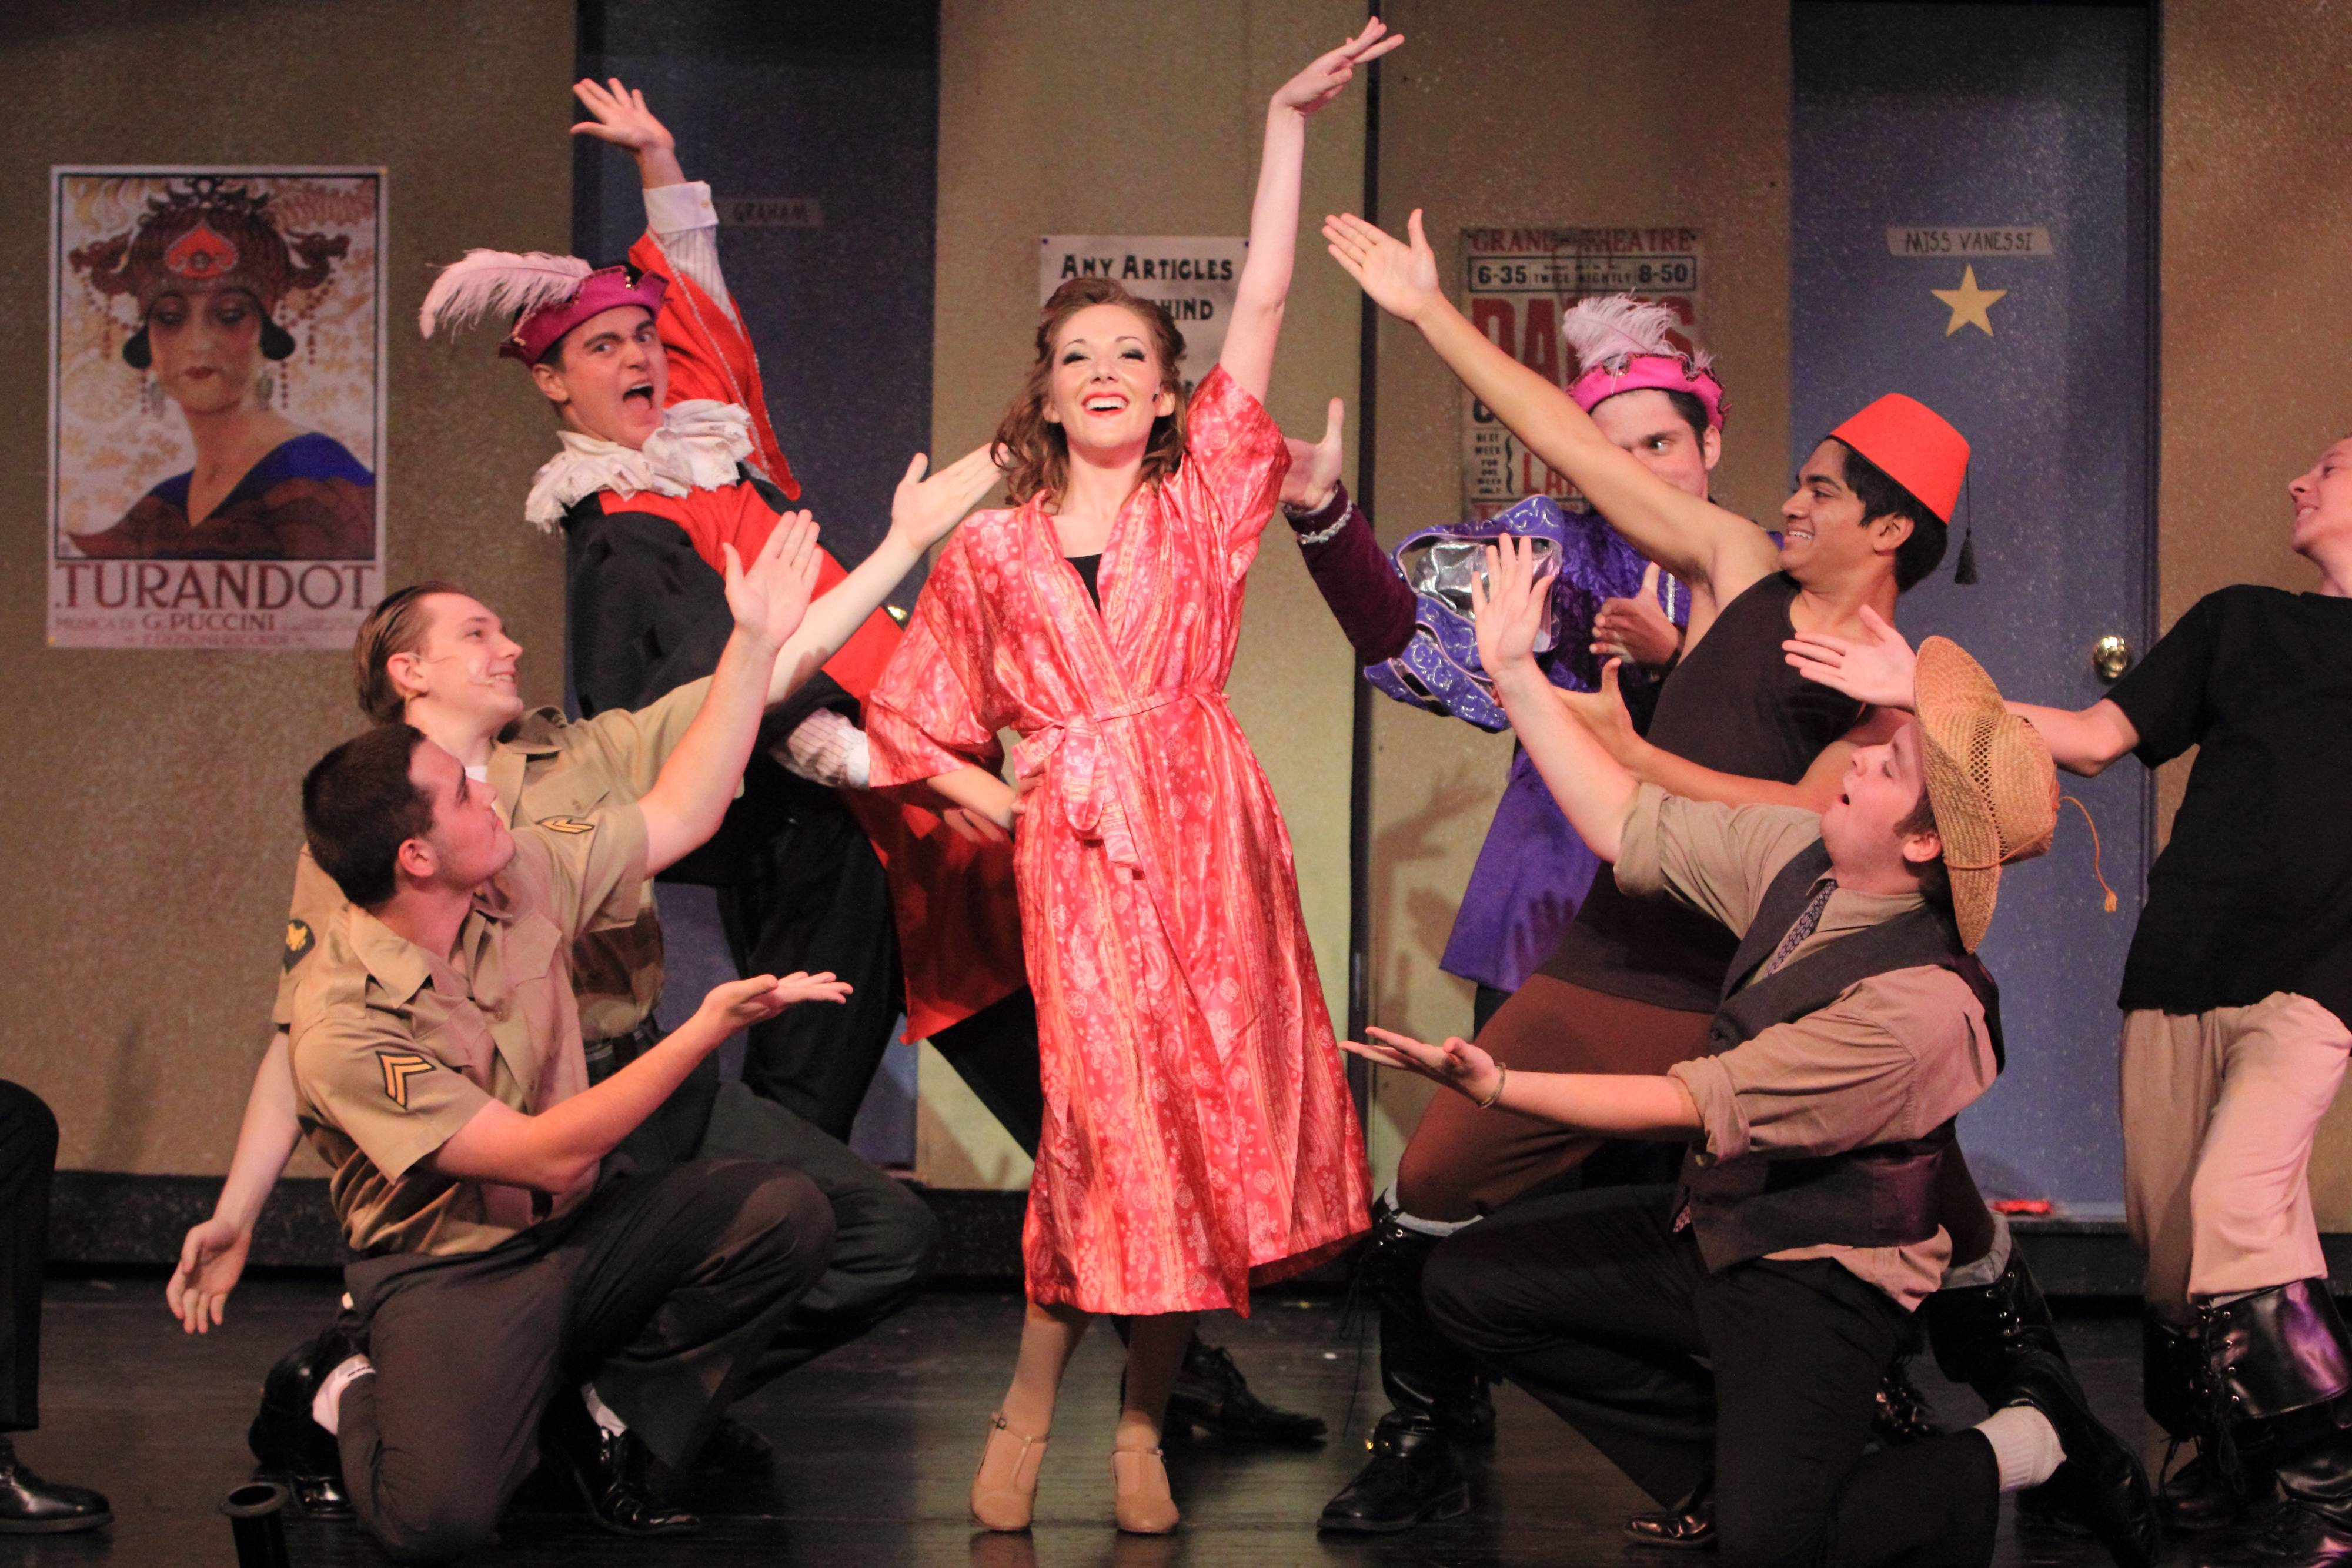 Schaumburg Summer Theatre will present Cabaret Night, an evening of songs celebrating a 30-year legacy of bringing musical theater to area audiences, Friday, July 20, at the Al Larson Prairie Center for the Arts.